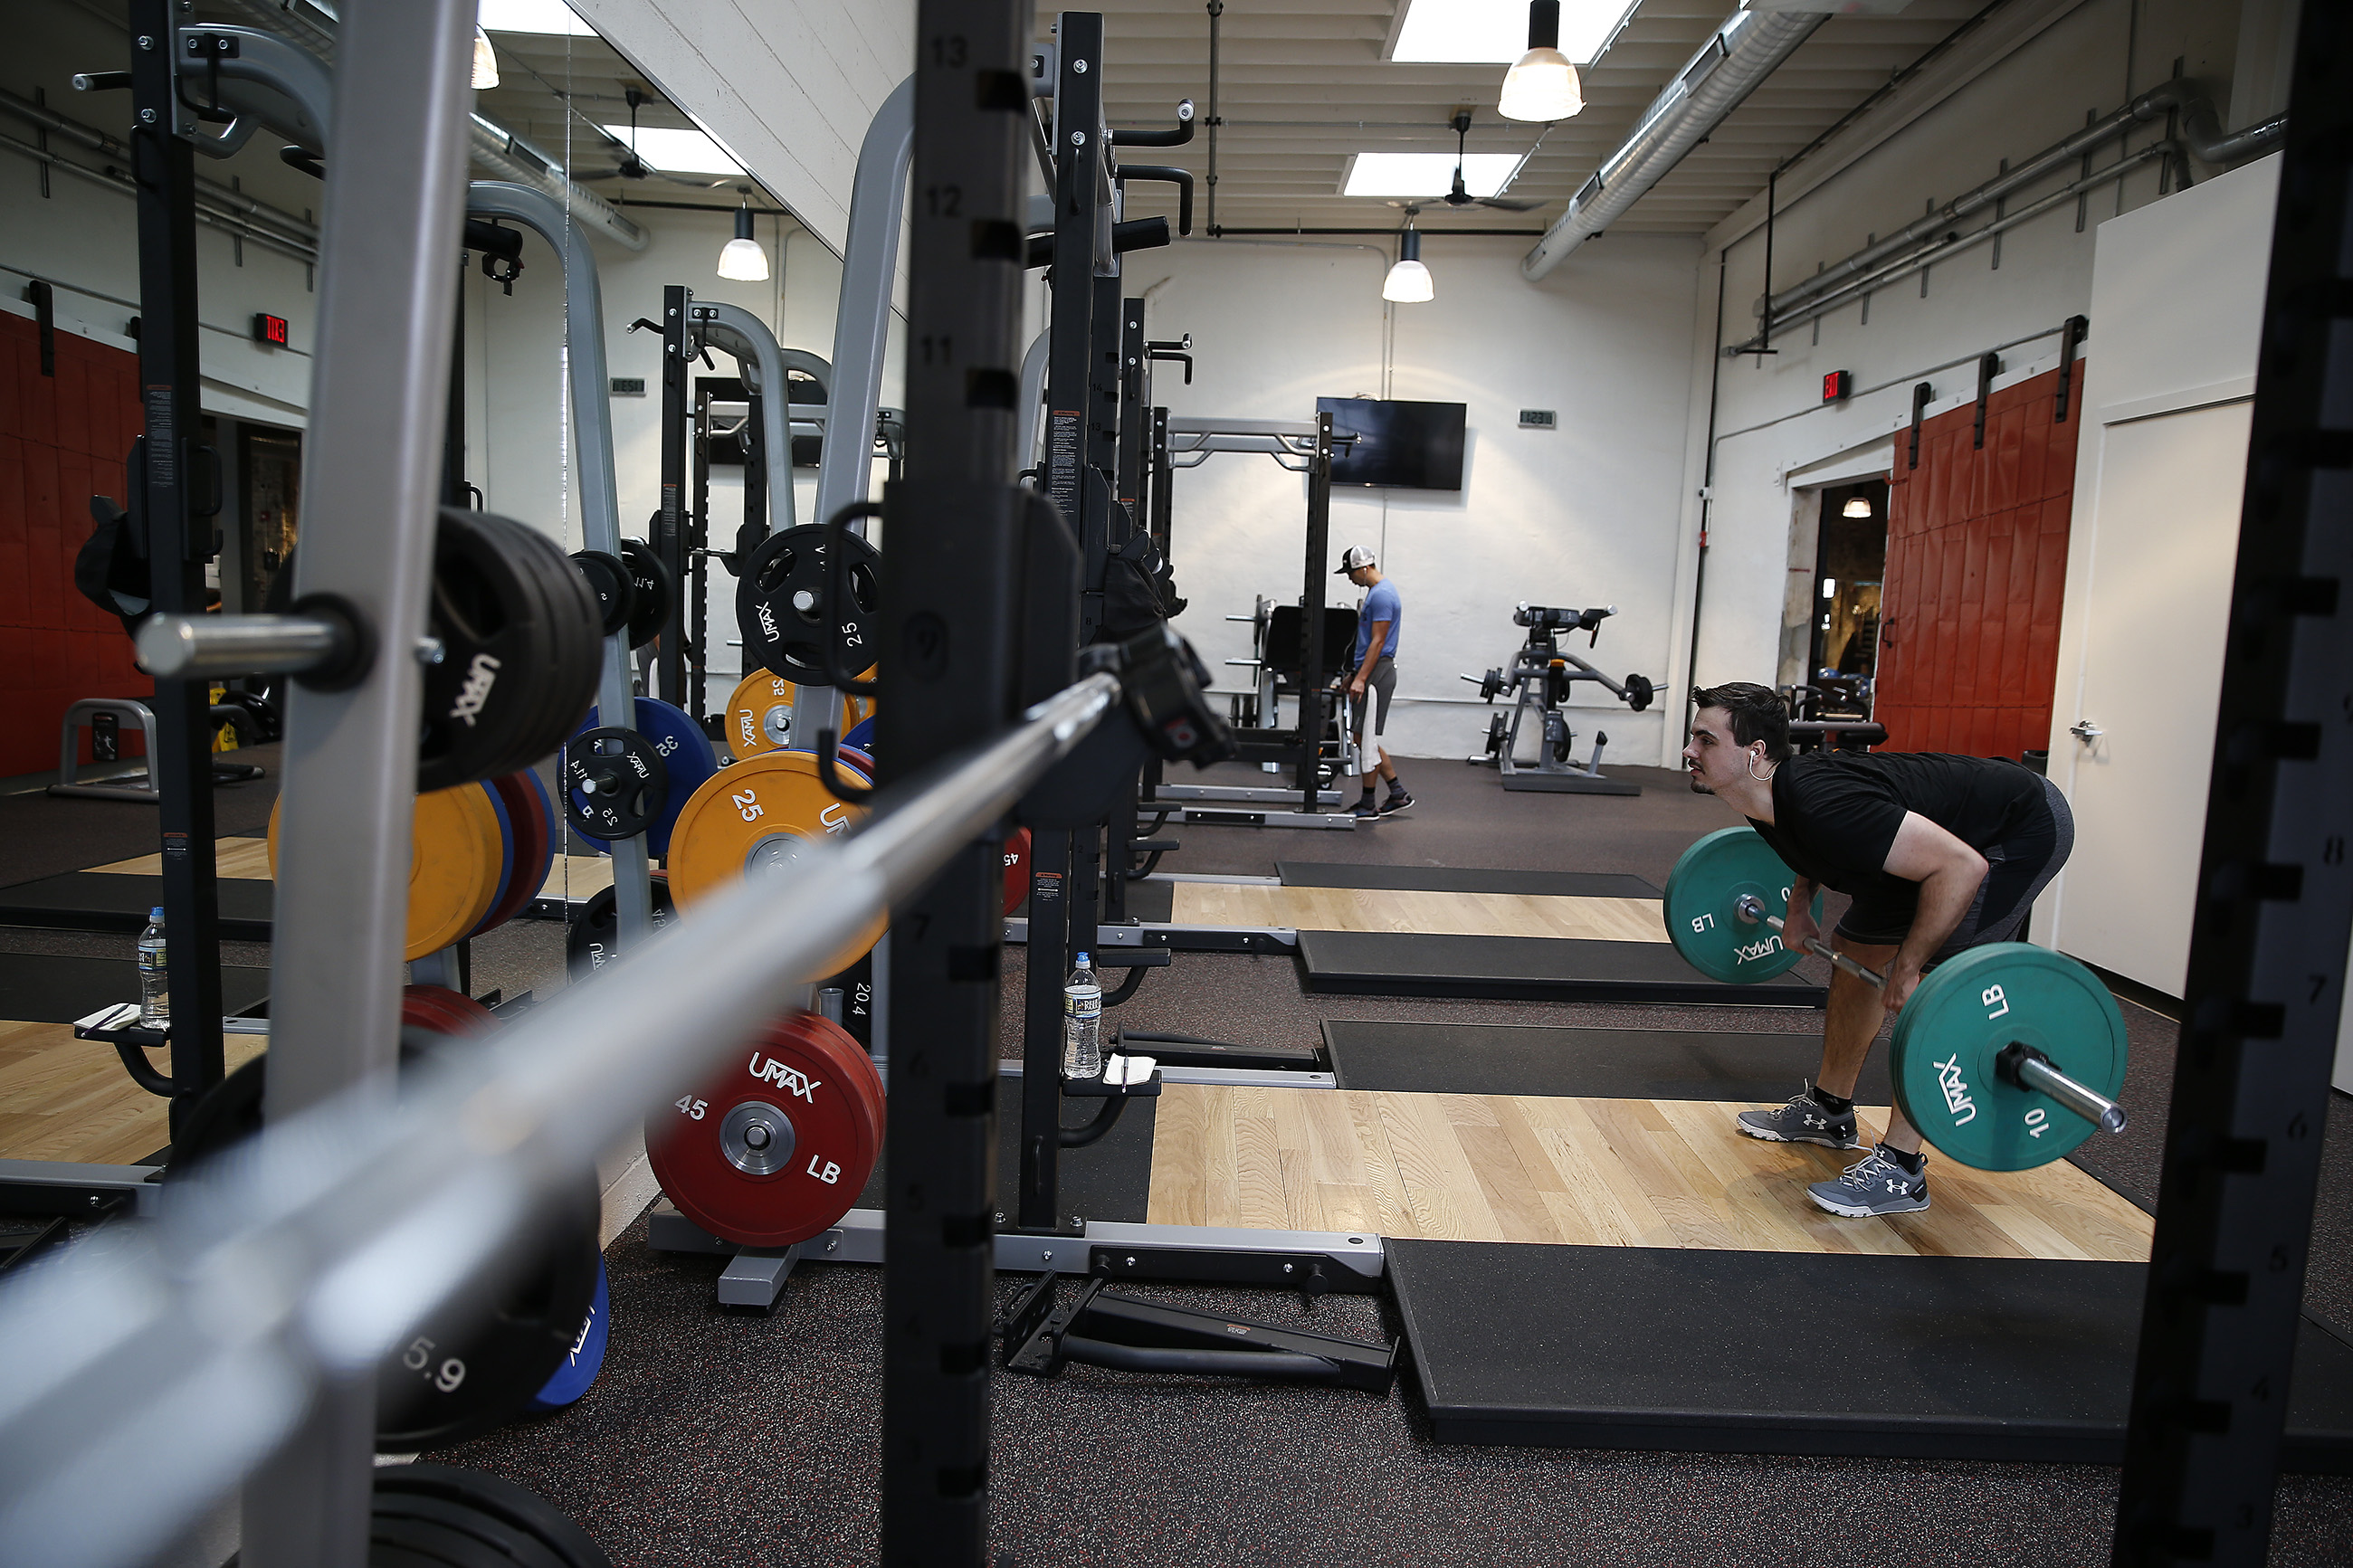 Amid Coronavirus Philly Gyms And Fitness Studios Are Struggling